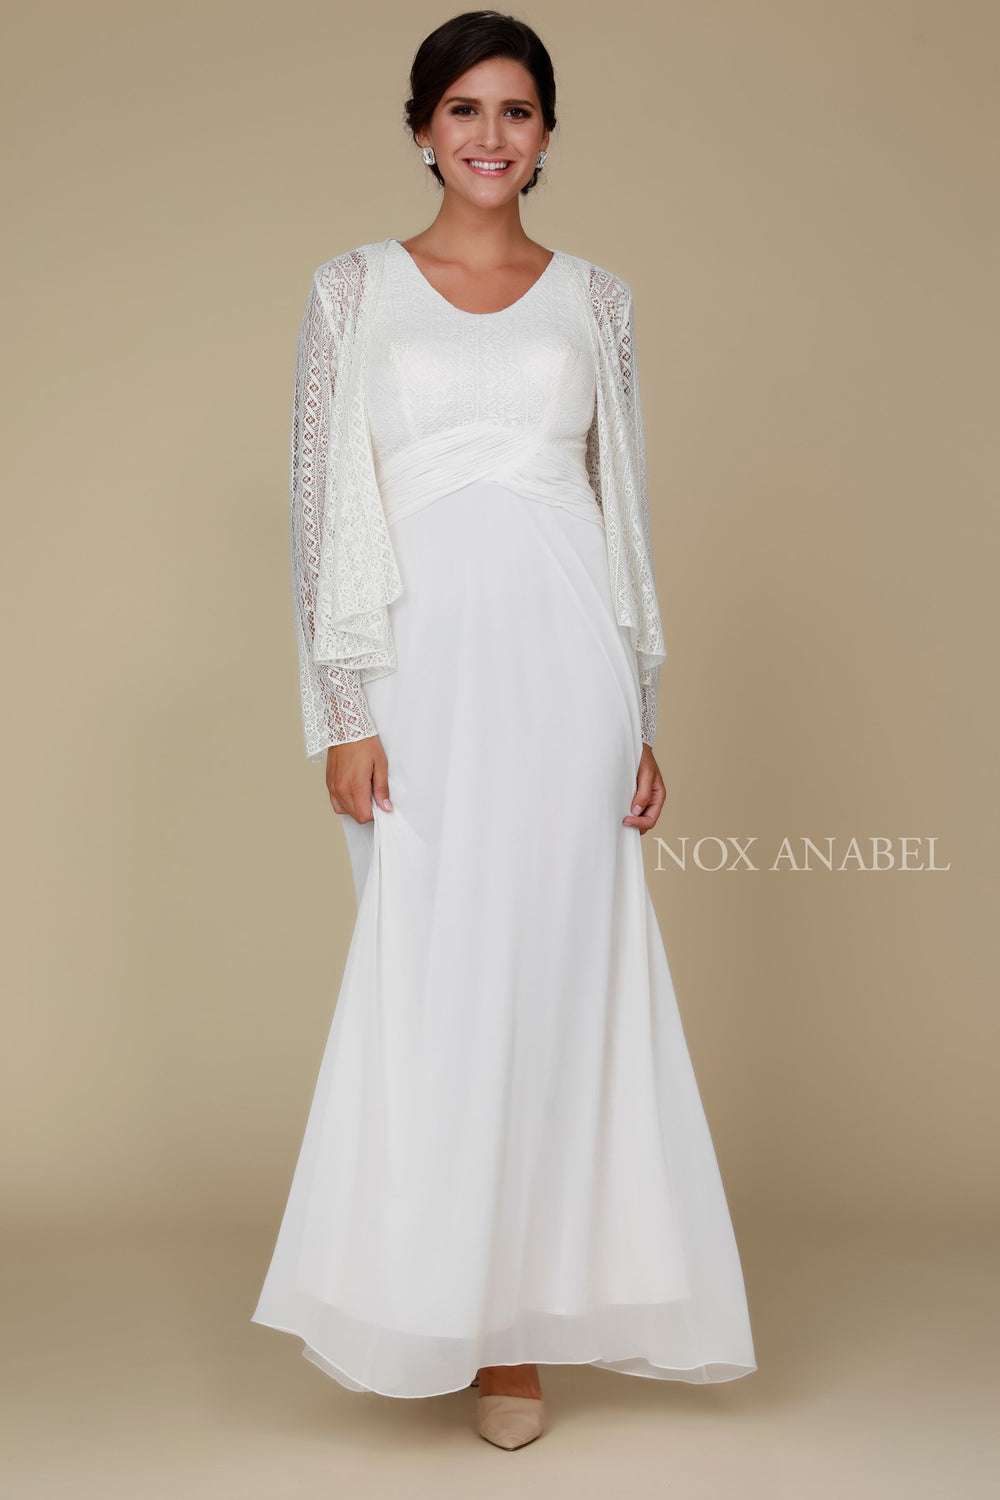 MOTHER OF BRIDE AND GROOM LACE DRESS WITH LONG SLEEVE JACKET